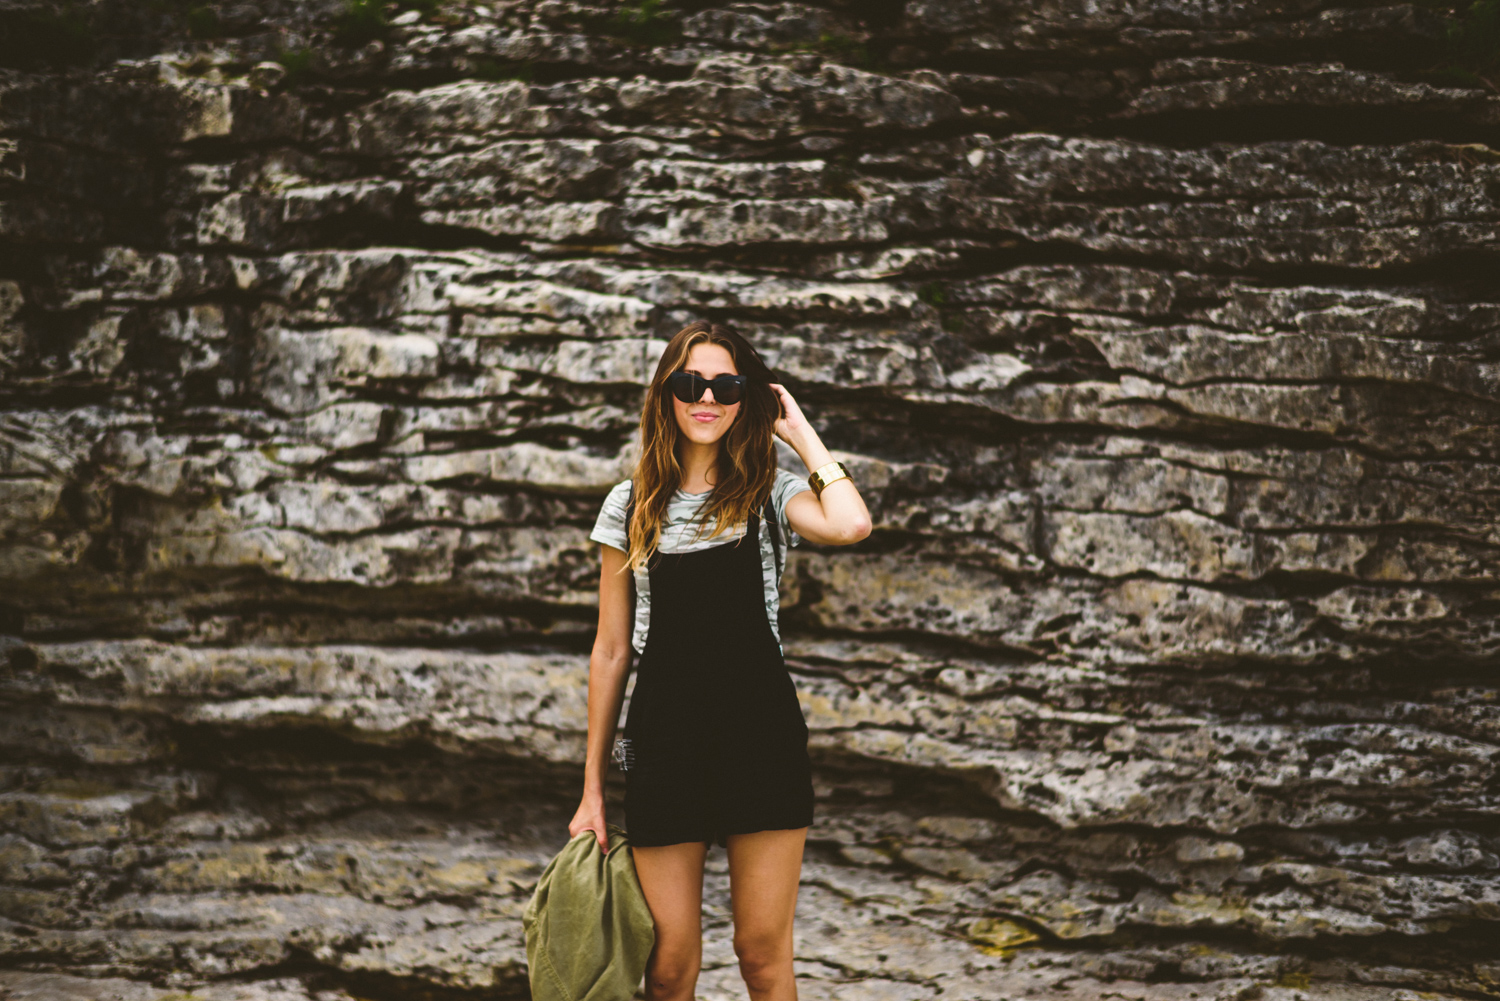 046 - sunglasses girl in front of rocks.jpg